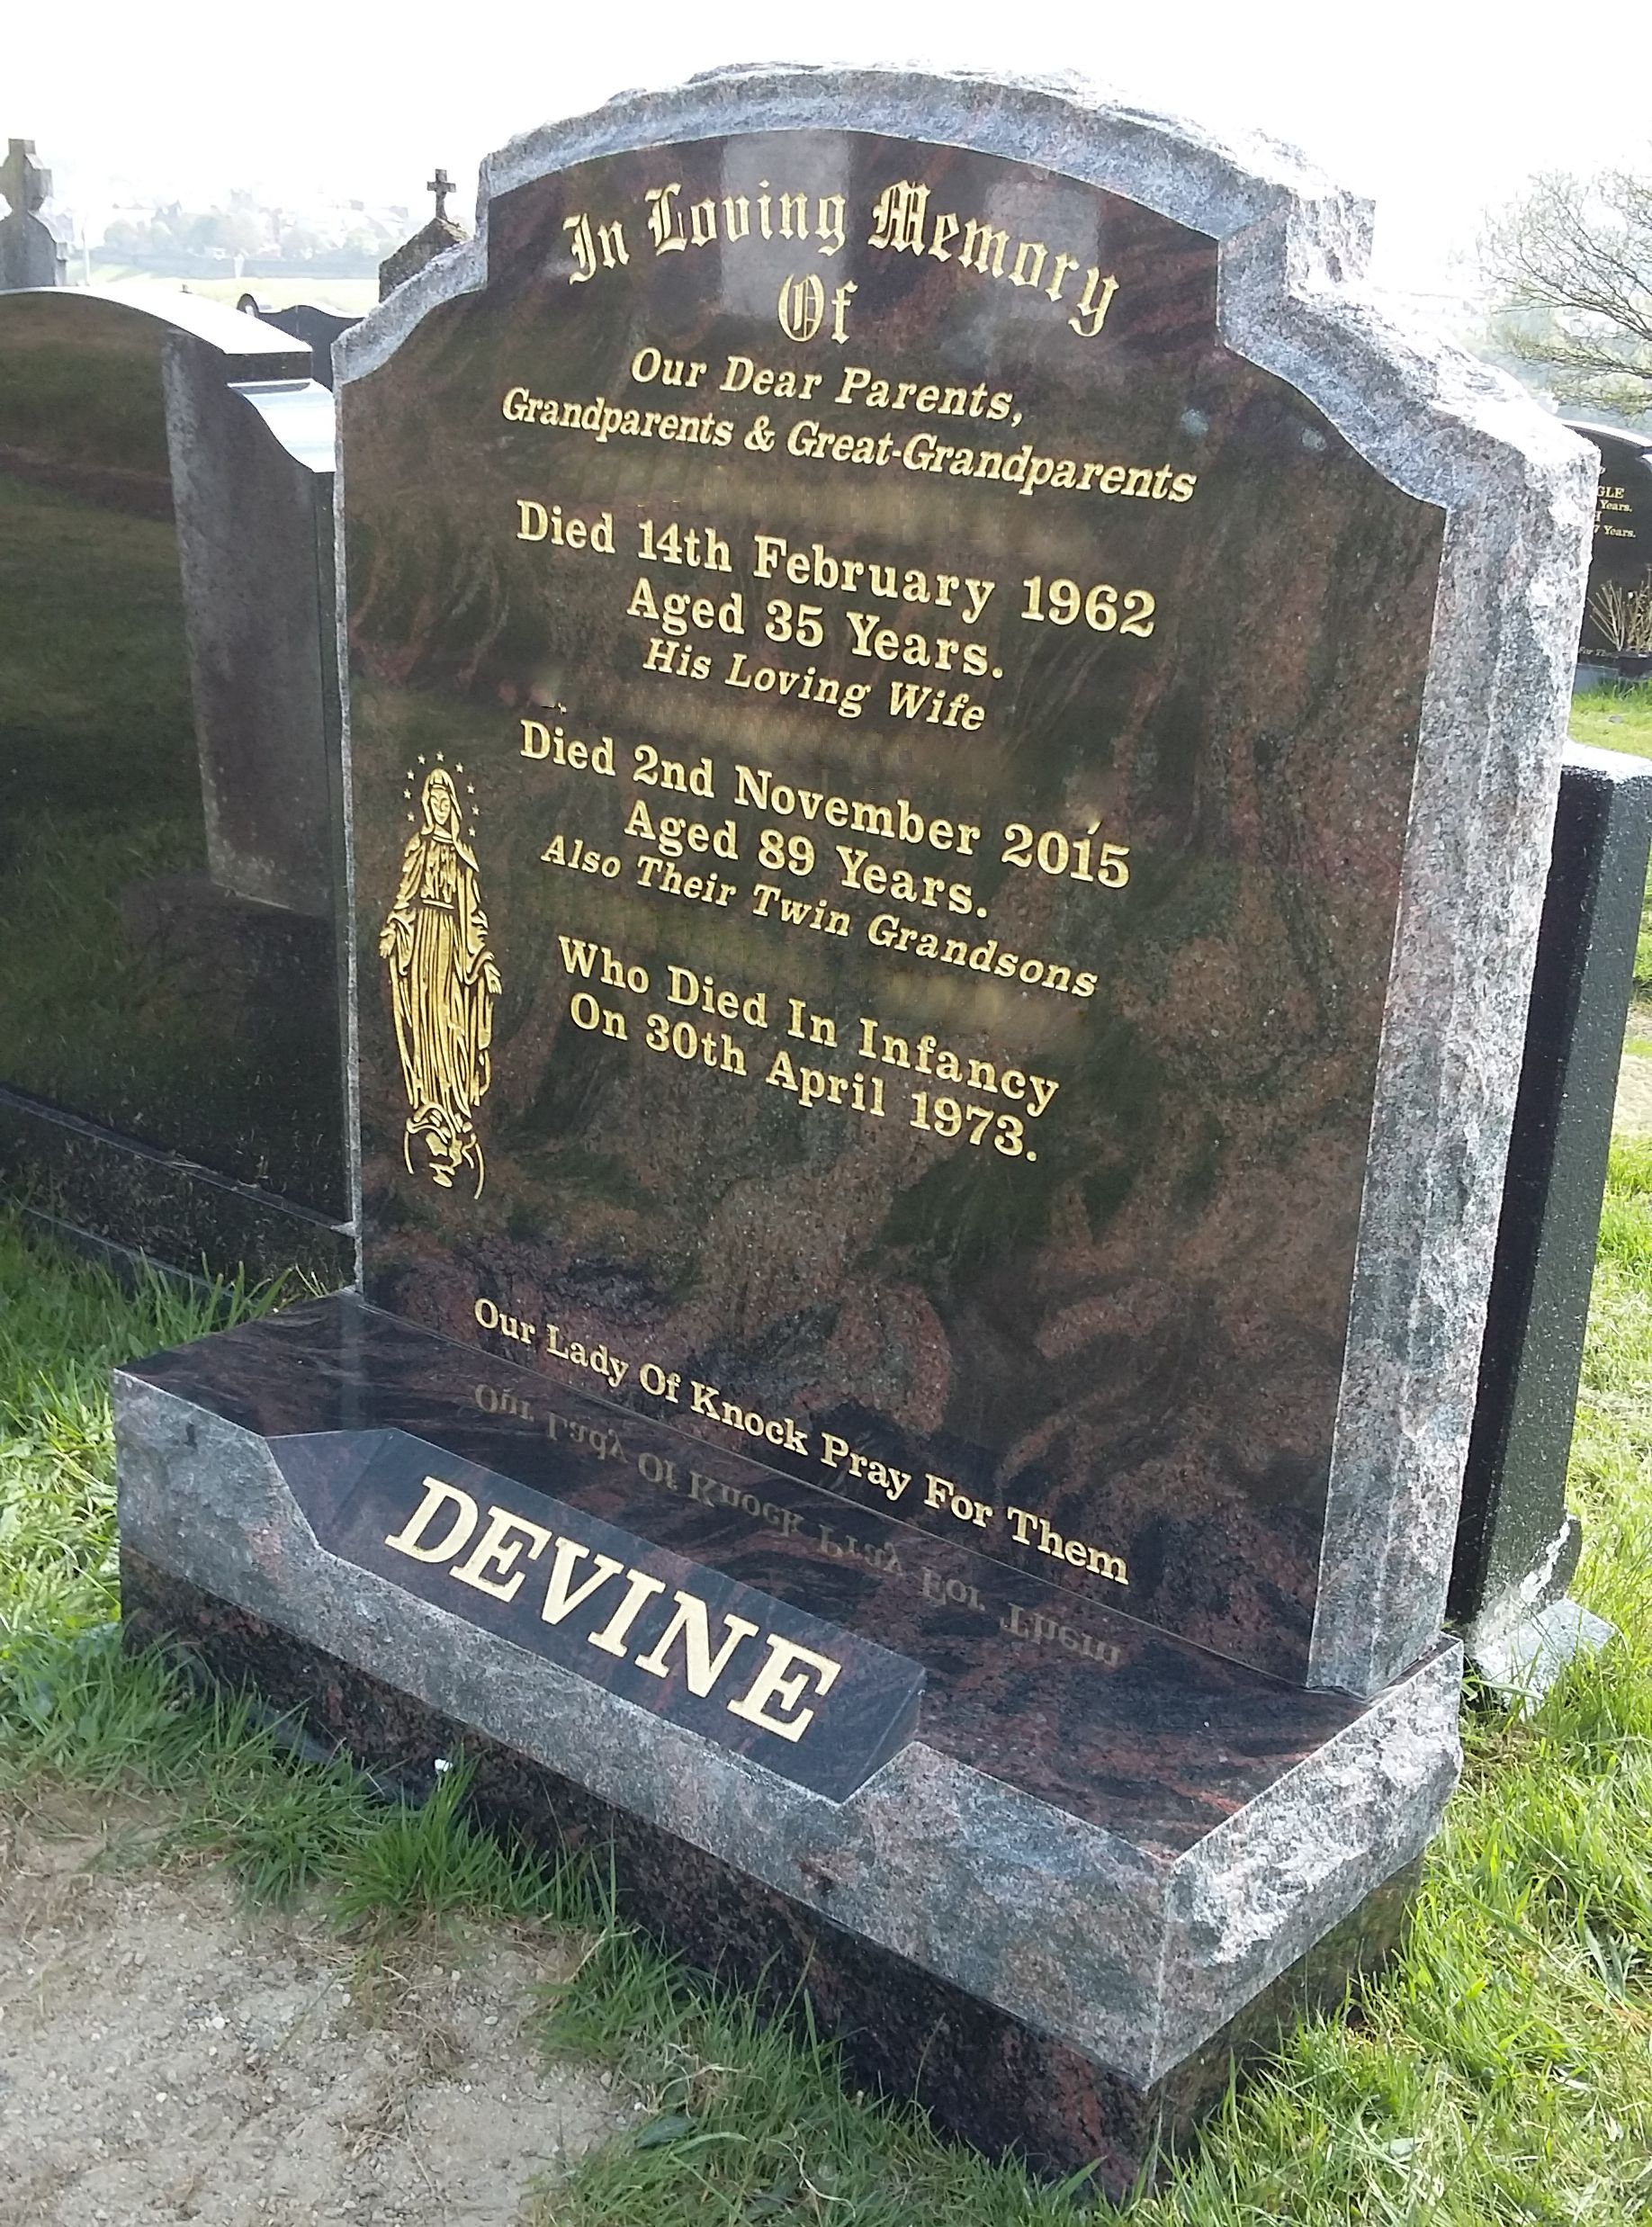 Rock Pitch G3 Devlin Memorials Headstones Donegal